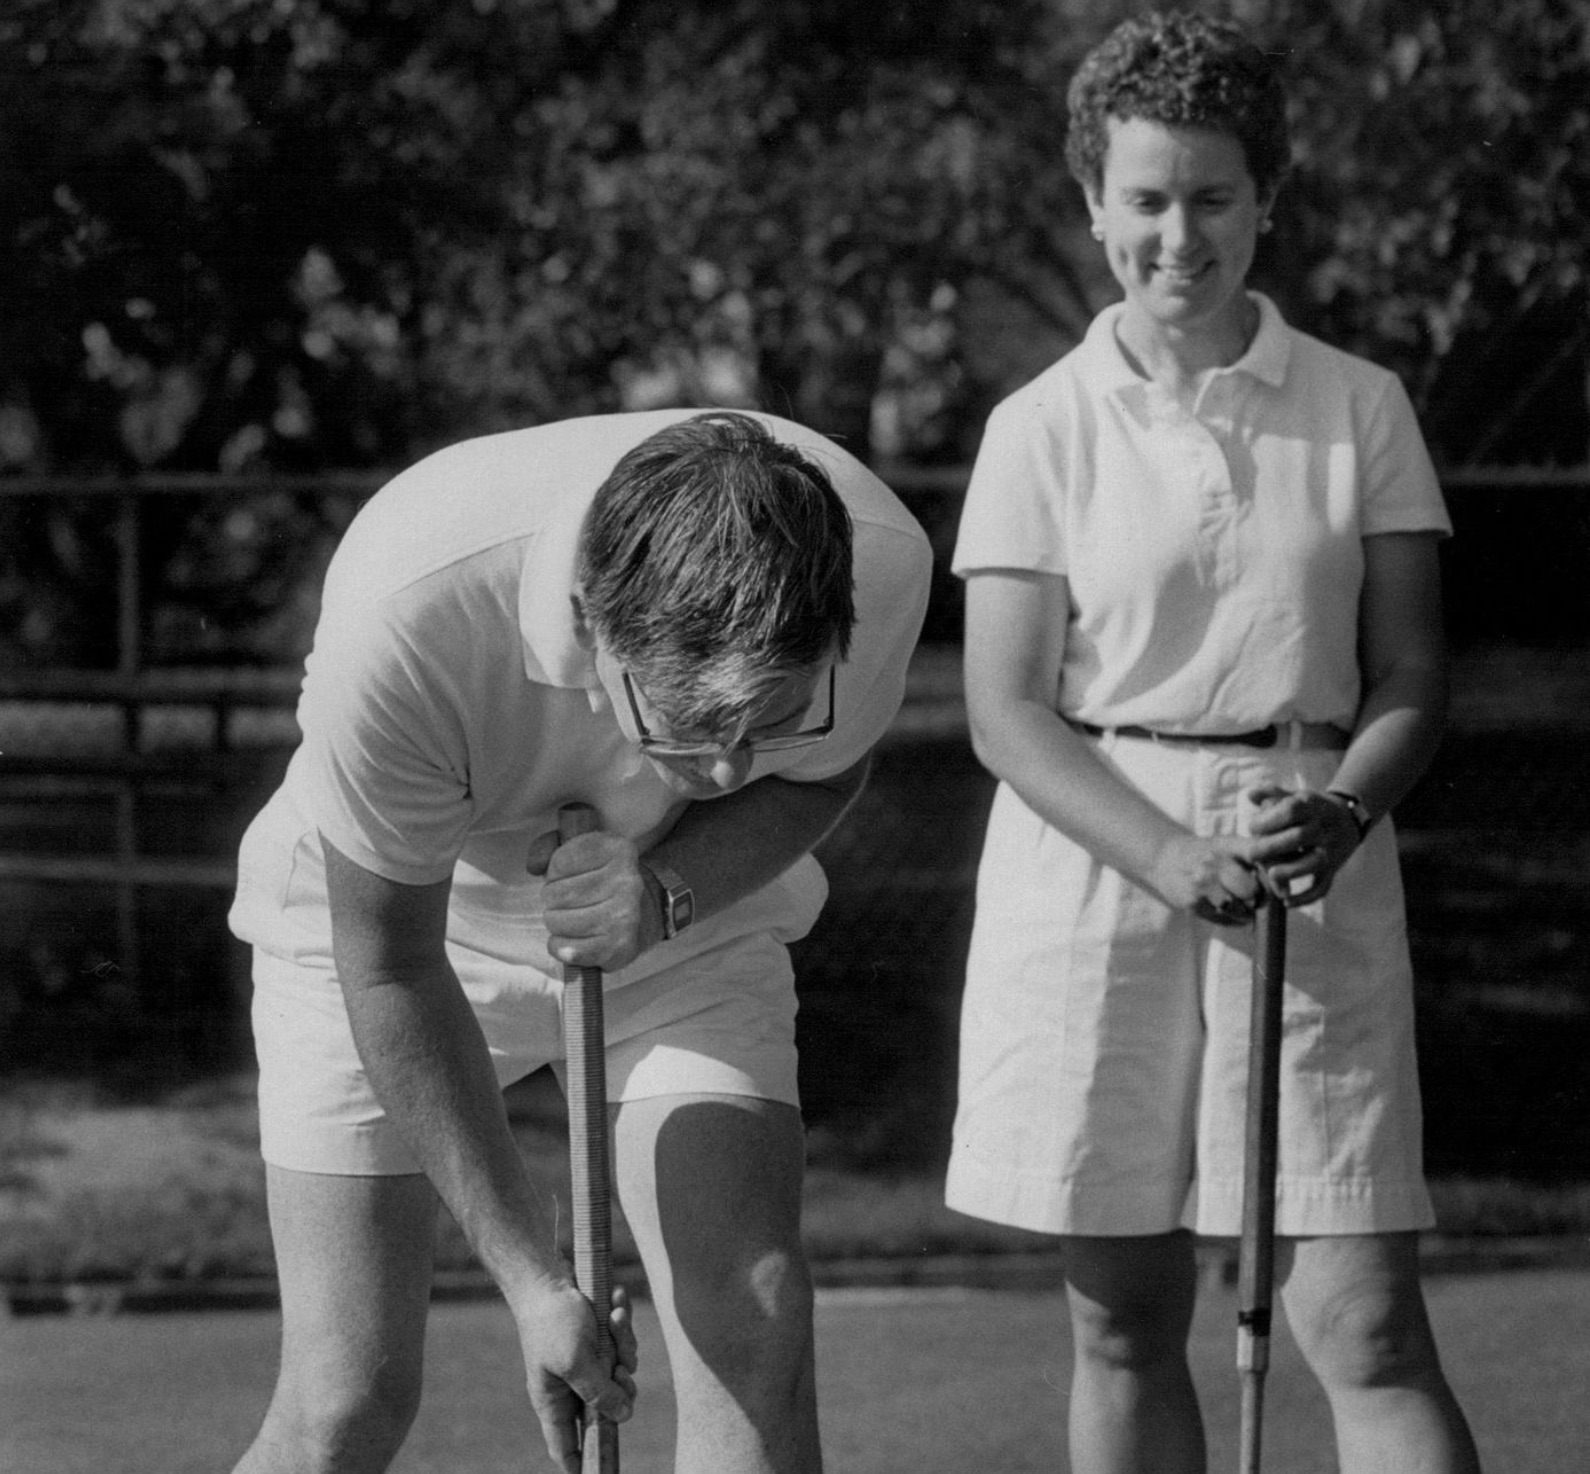 image of croquet players